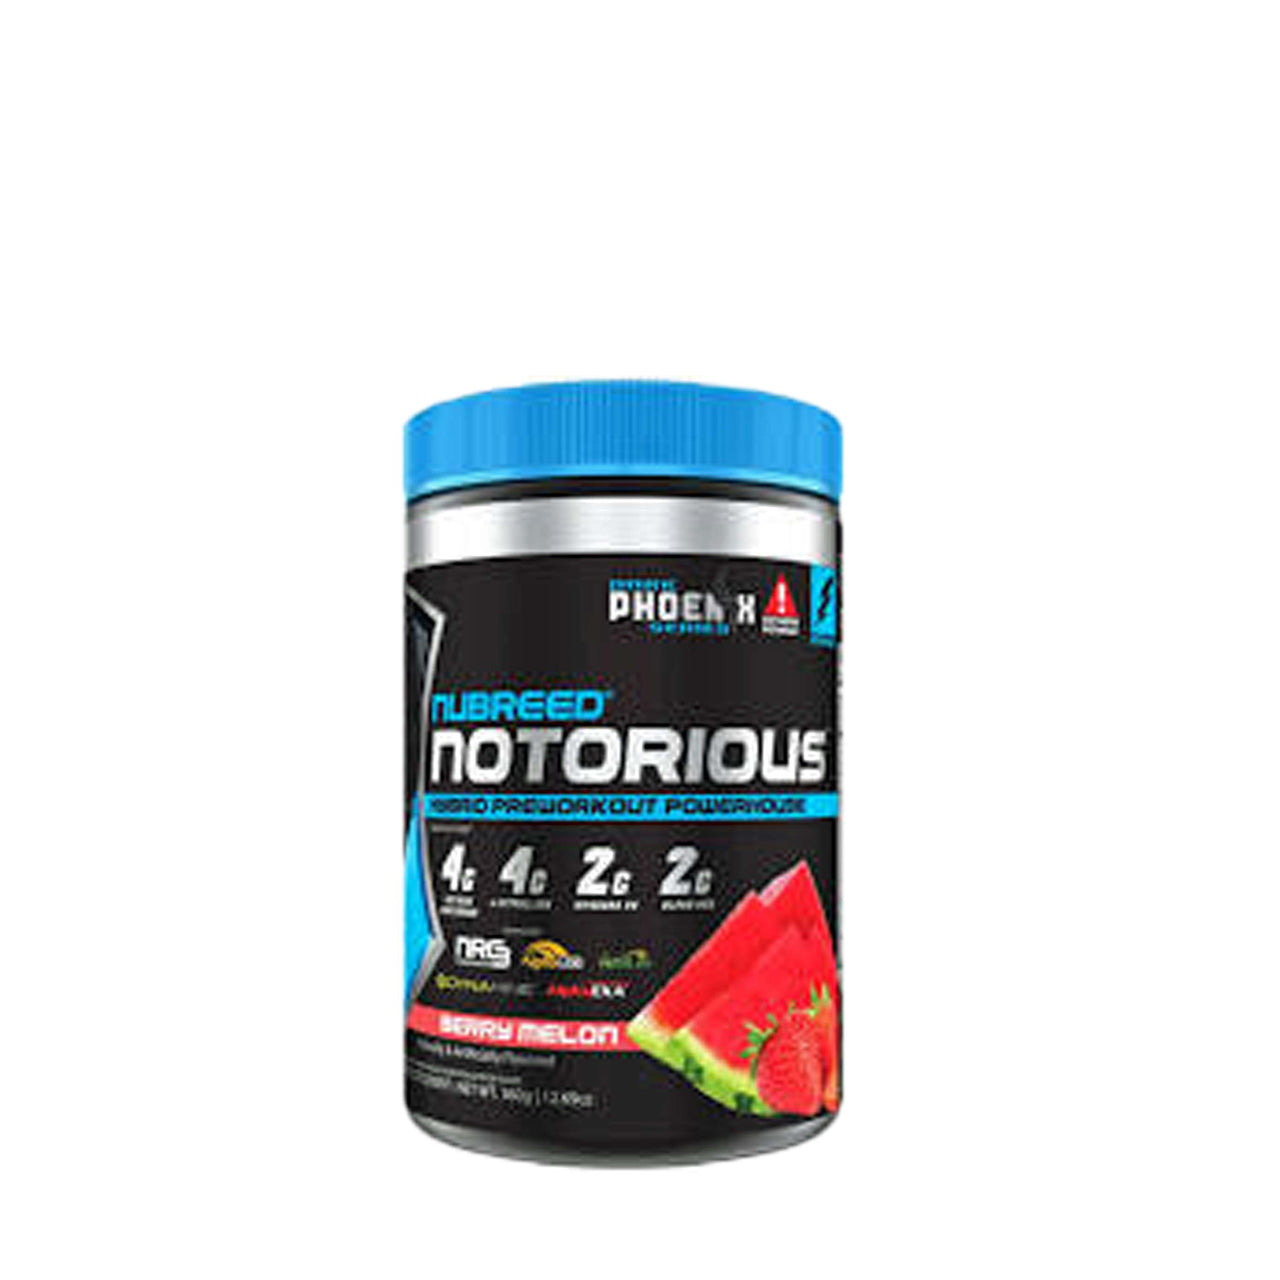 Notorious Pre-workout